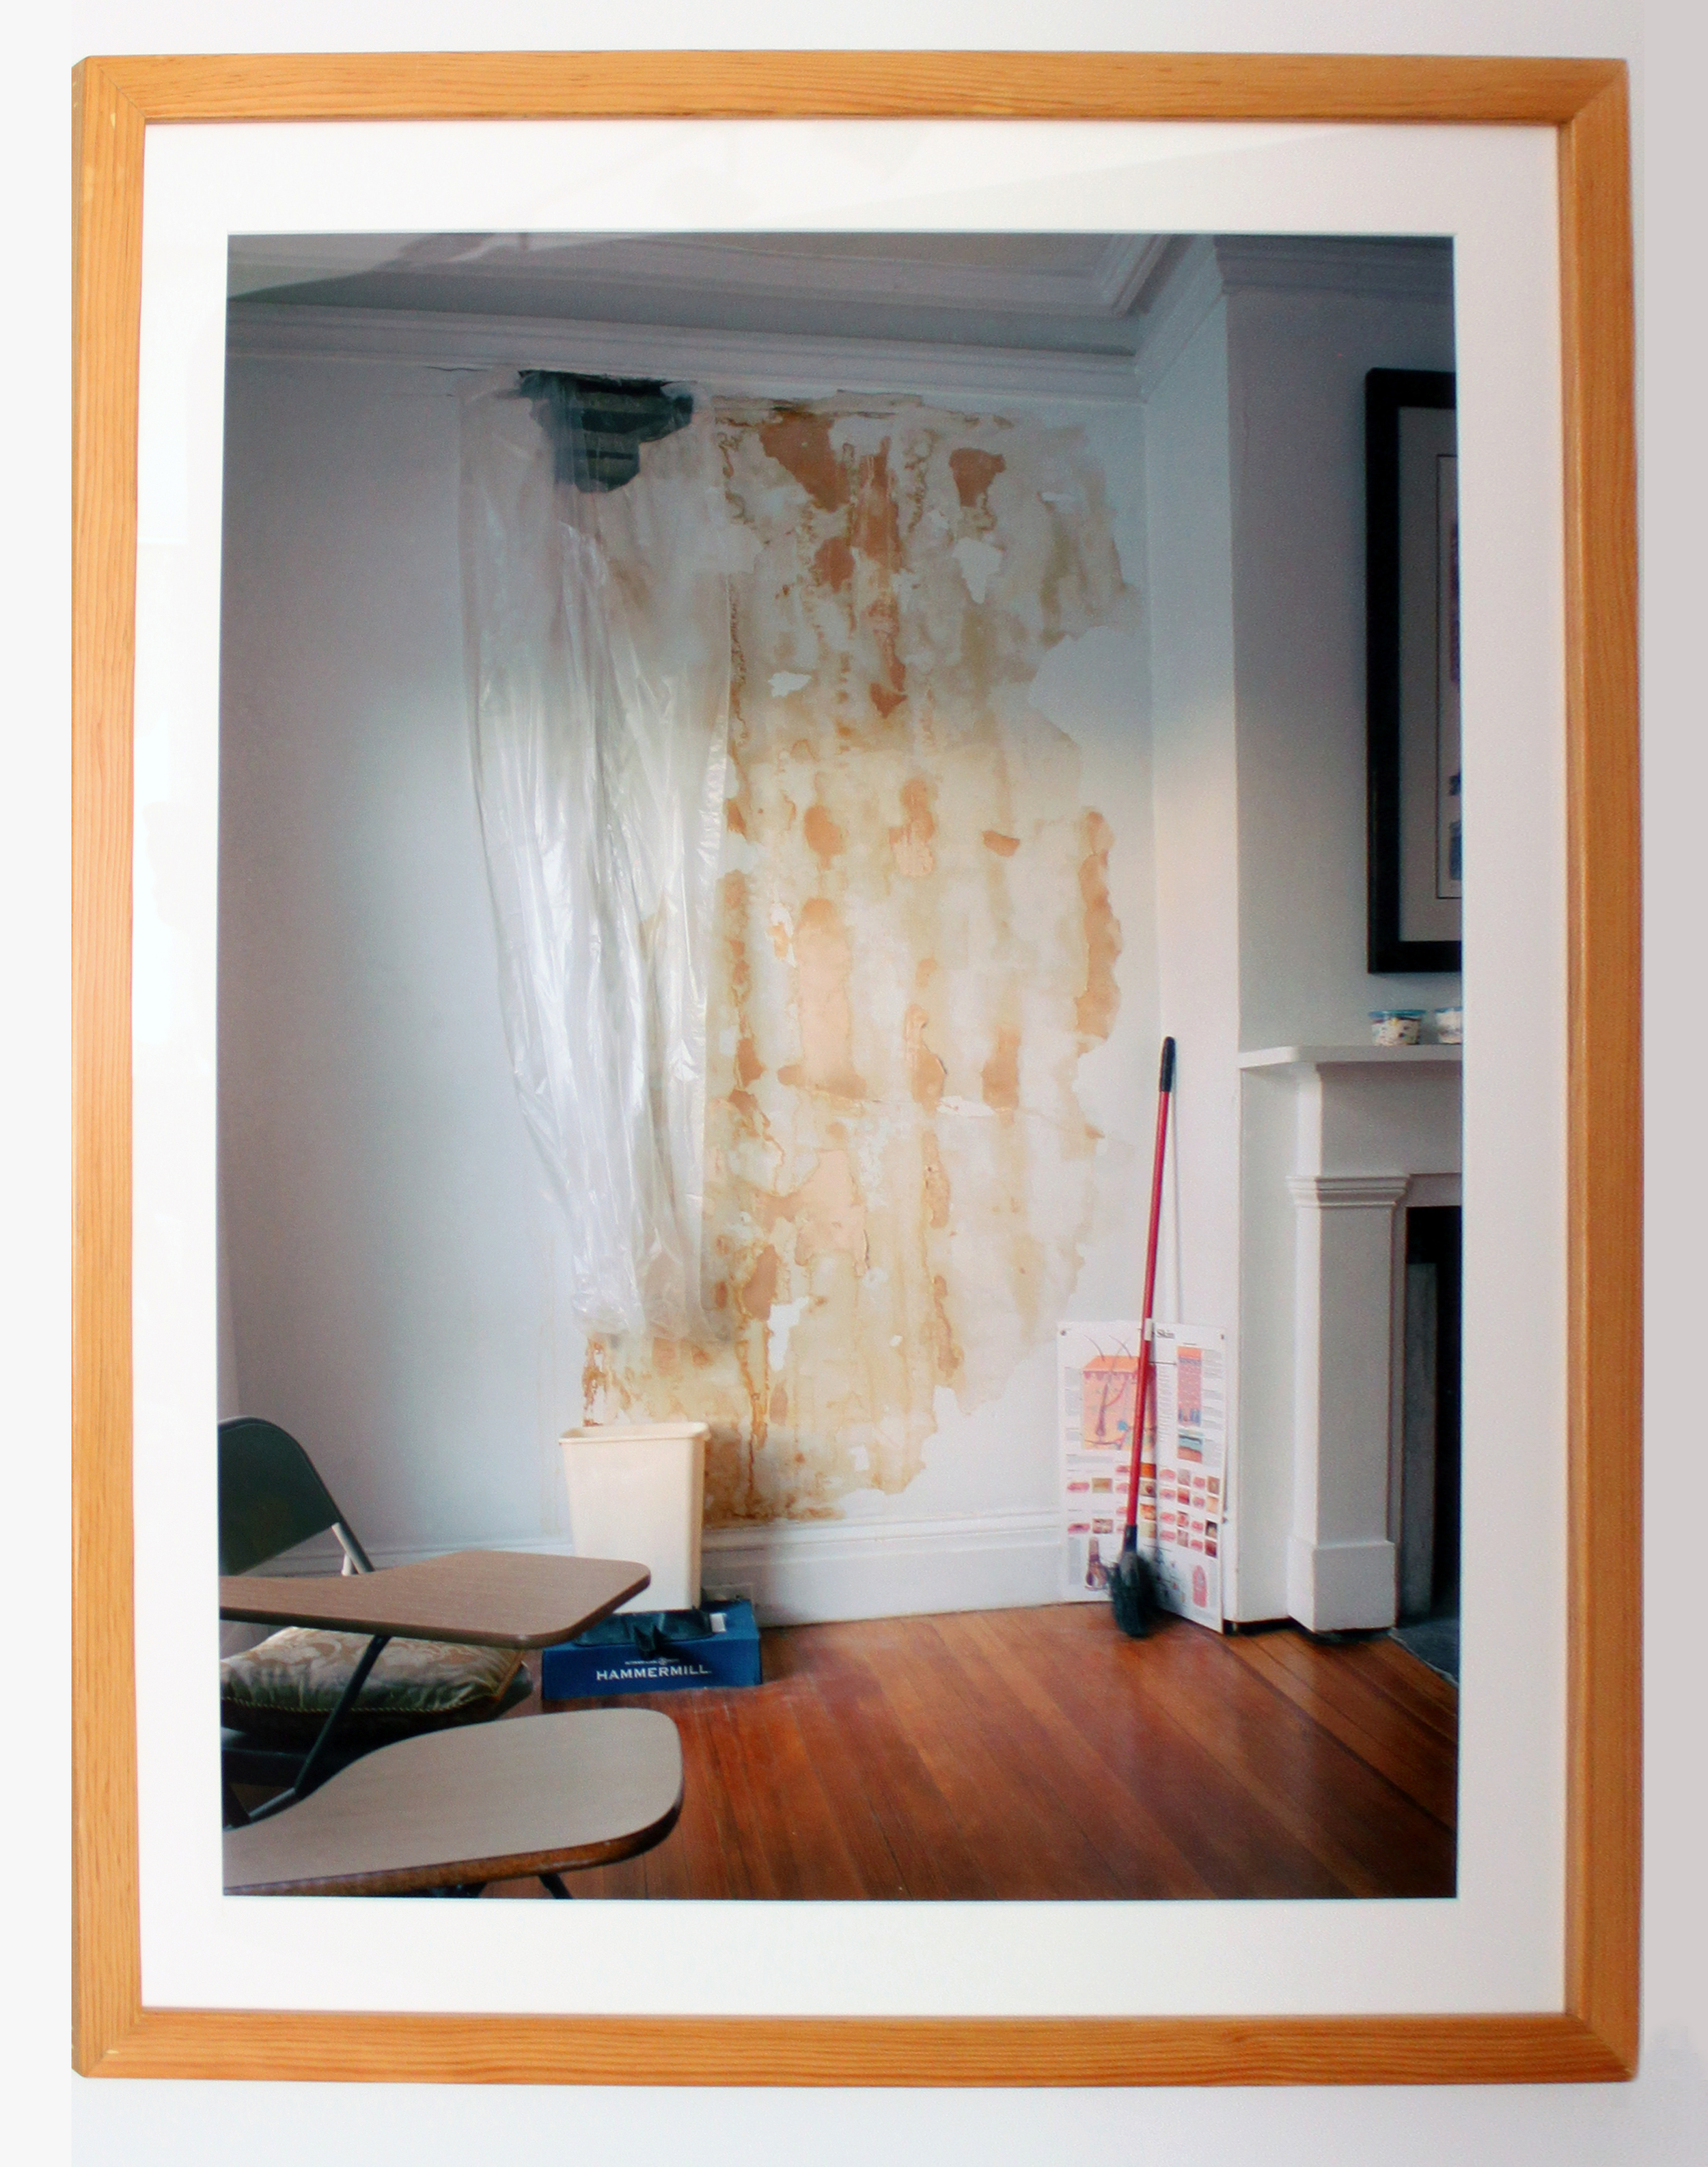 Lindsey Filowitz,  Skin Wall  , 2011; 120mm film; 30 x 24 inches; Framed: 34 1/4 x 28 inches